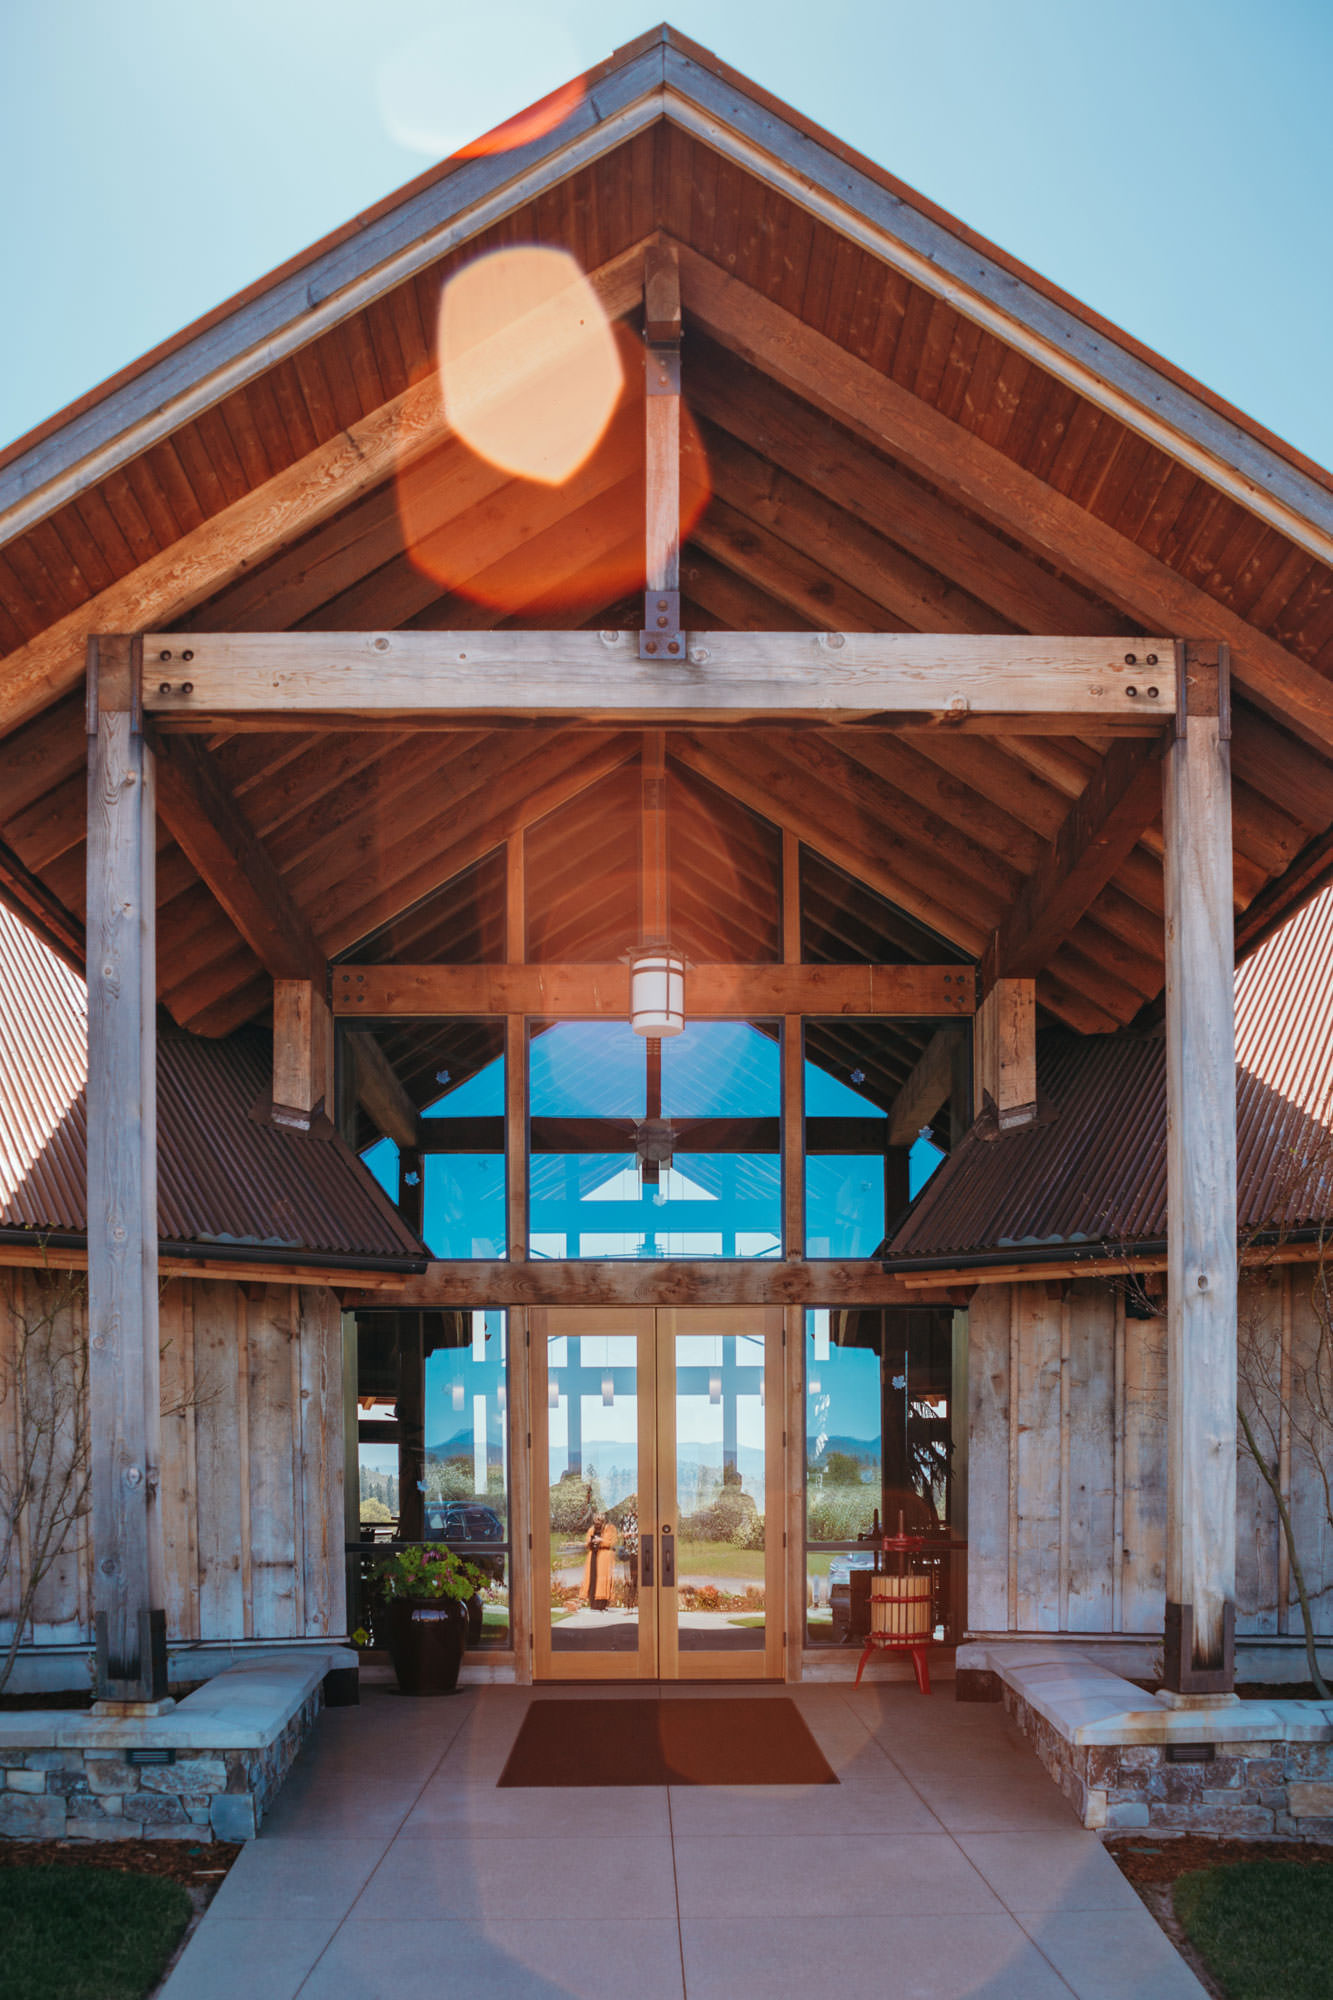 The tasting room for Kriselle Cellars is made of large beams and big windows.